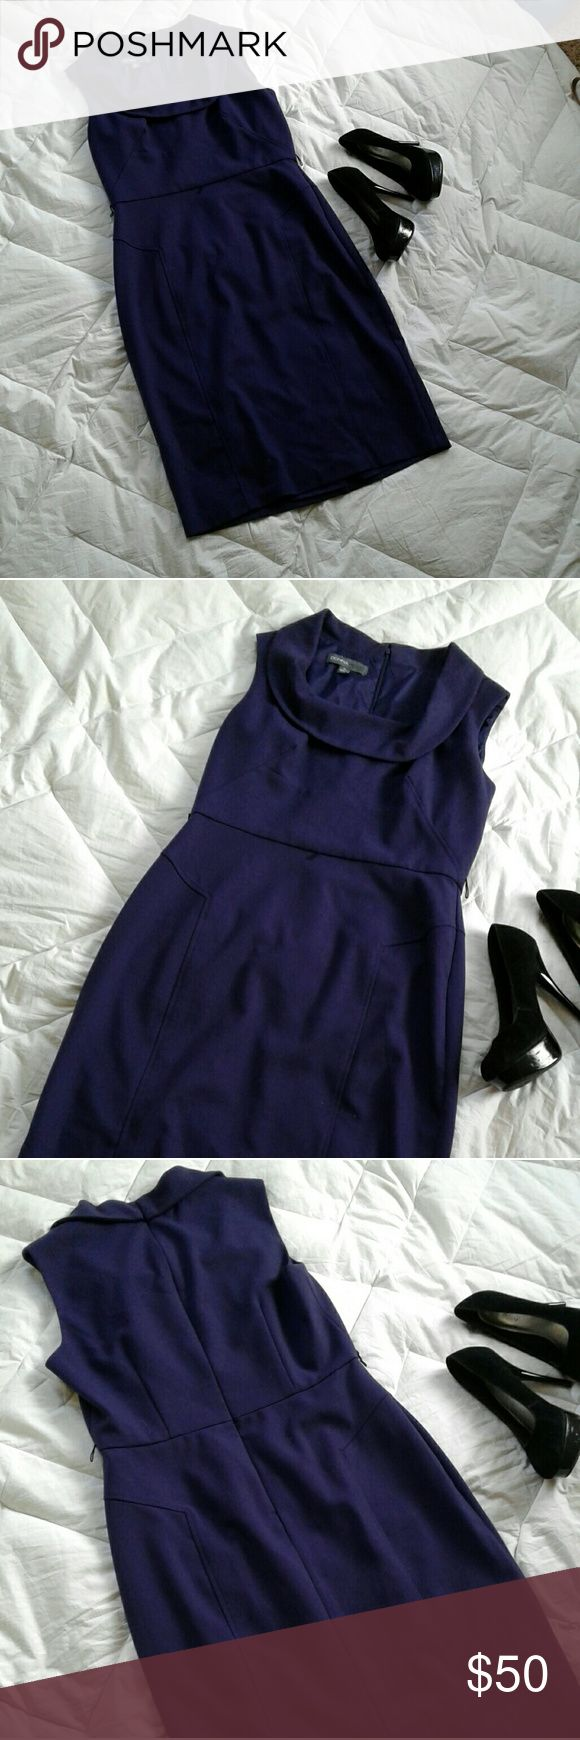 Donna Ricco Dress. Purple scoop neck professional dress. Should be worn for work or happy hour. Perfect for women with curves! Offers welcome; Donna Ricco Dresses Midi